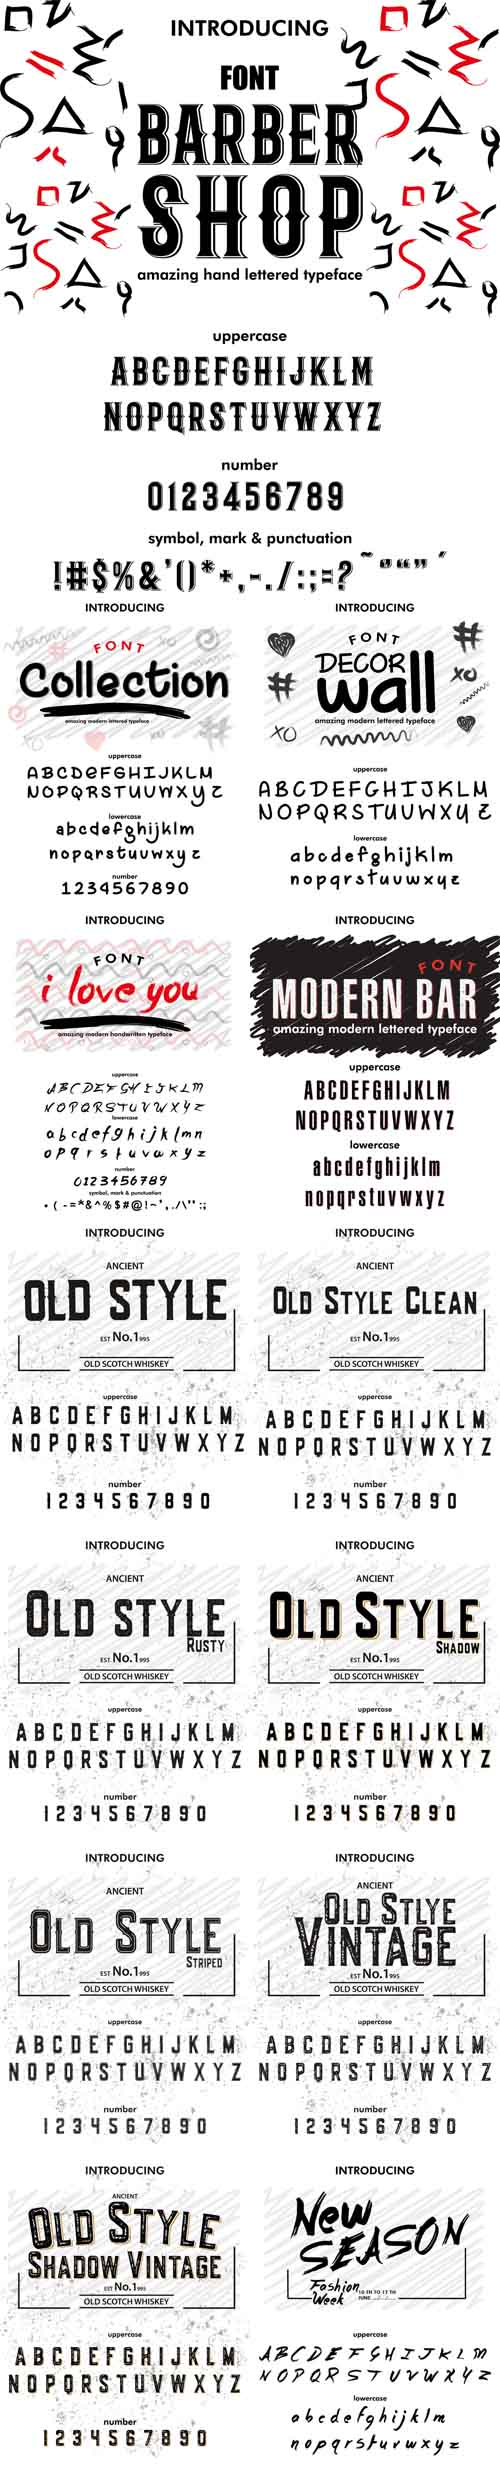 Vector Font.Typeface. Script. Old Style Vintage